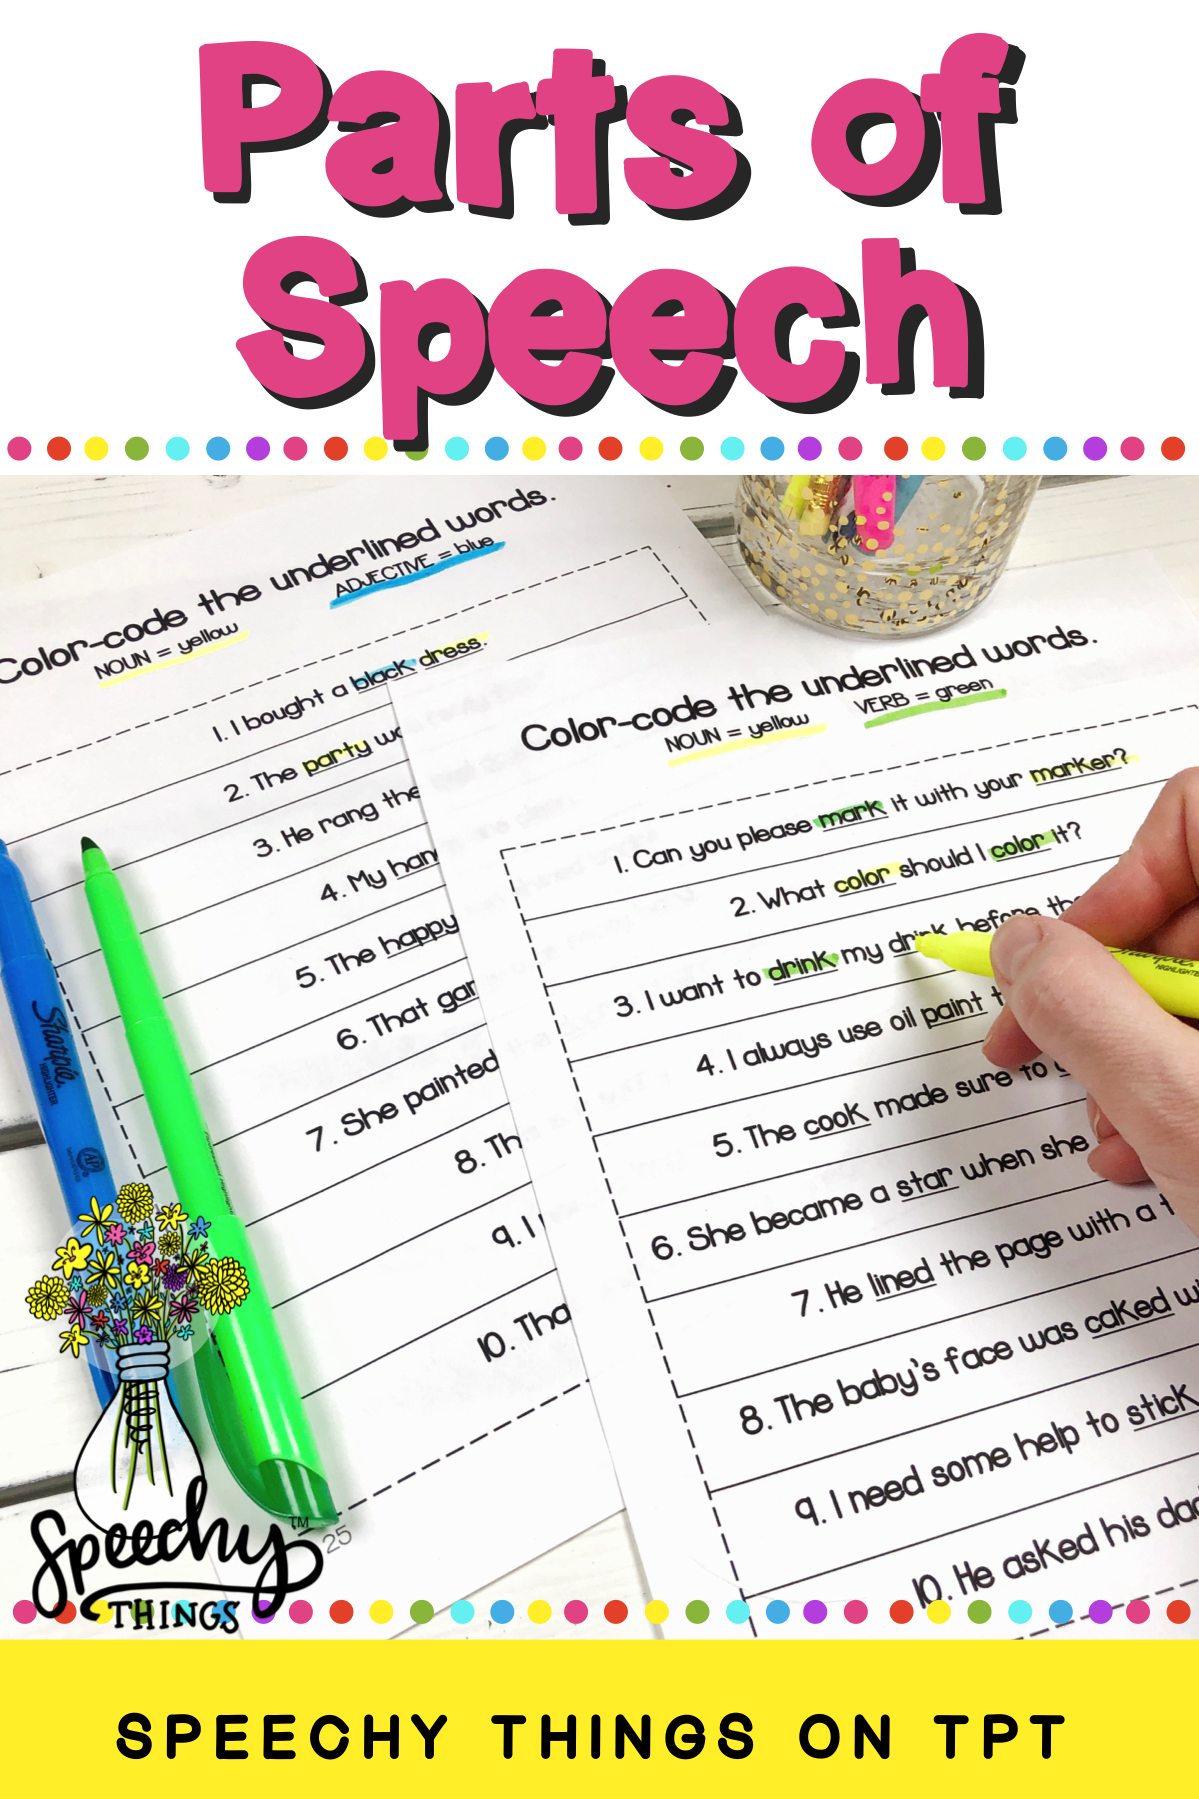 Parts Of Speech Activities For Speech Therapy Or Language Worksheets For The Classroom Fun Language Therapy Activities Part Of Speech Grammar Parts Of Speech [ 1799 x 1199 Pixel ]